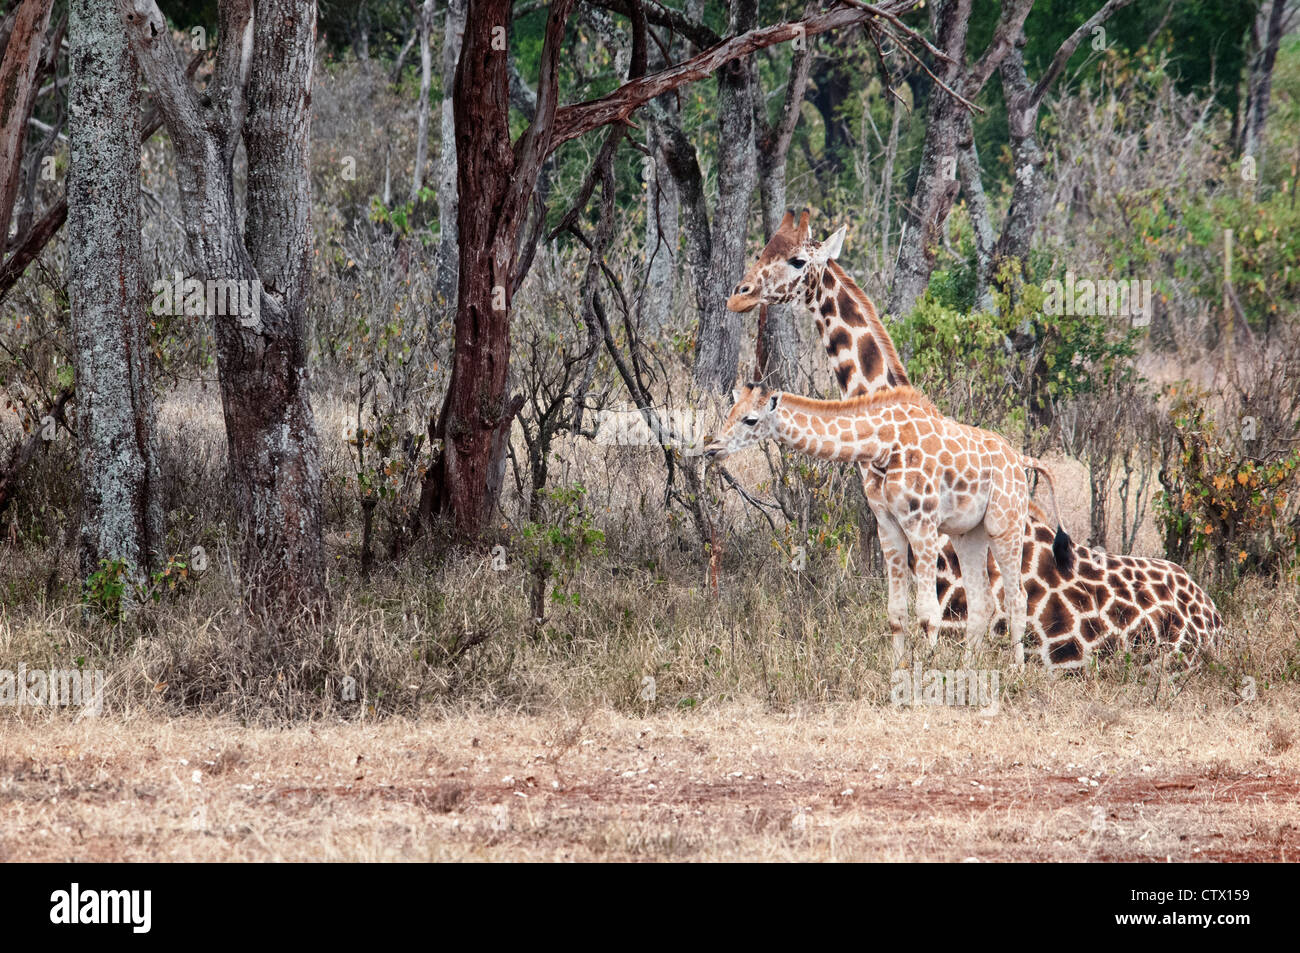 Rothschild Giraffe, Giraffa camelopardalis rothschild, mother sitting with her calf, Giraffe Manor, Nairobi, Kenya, - Stock Image